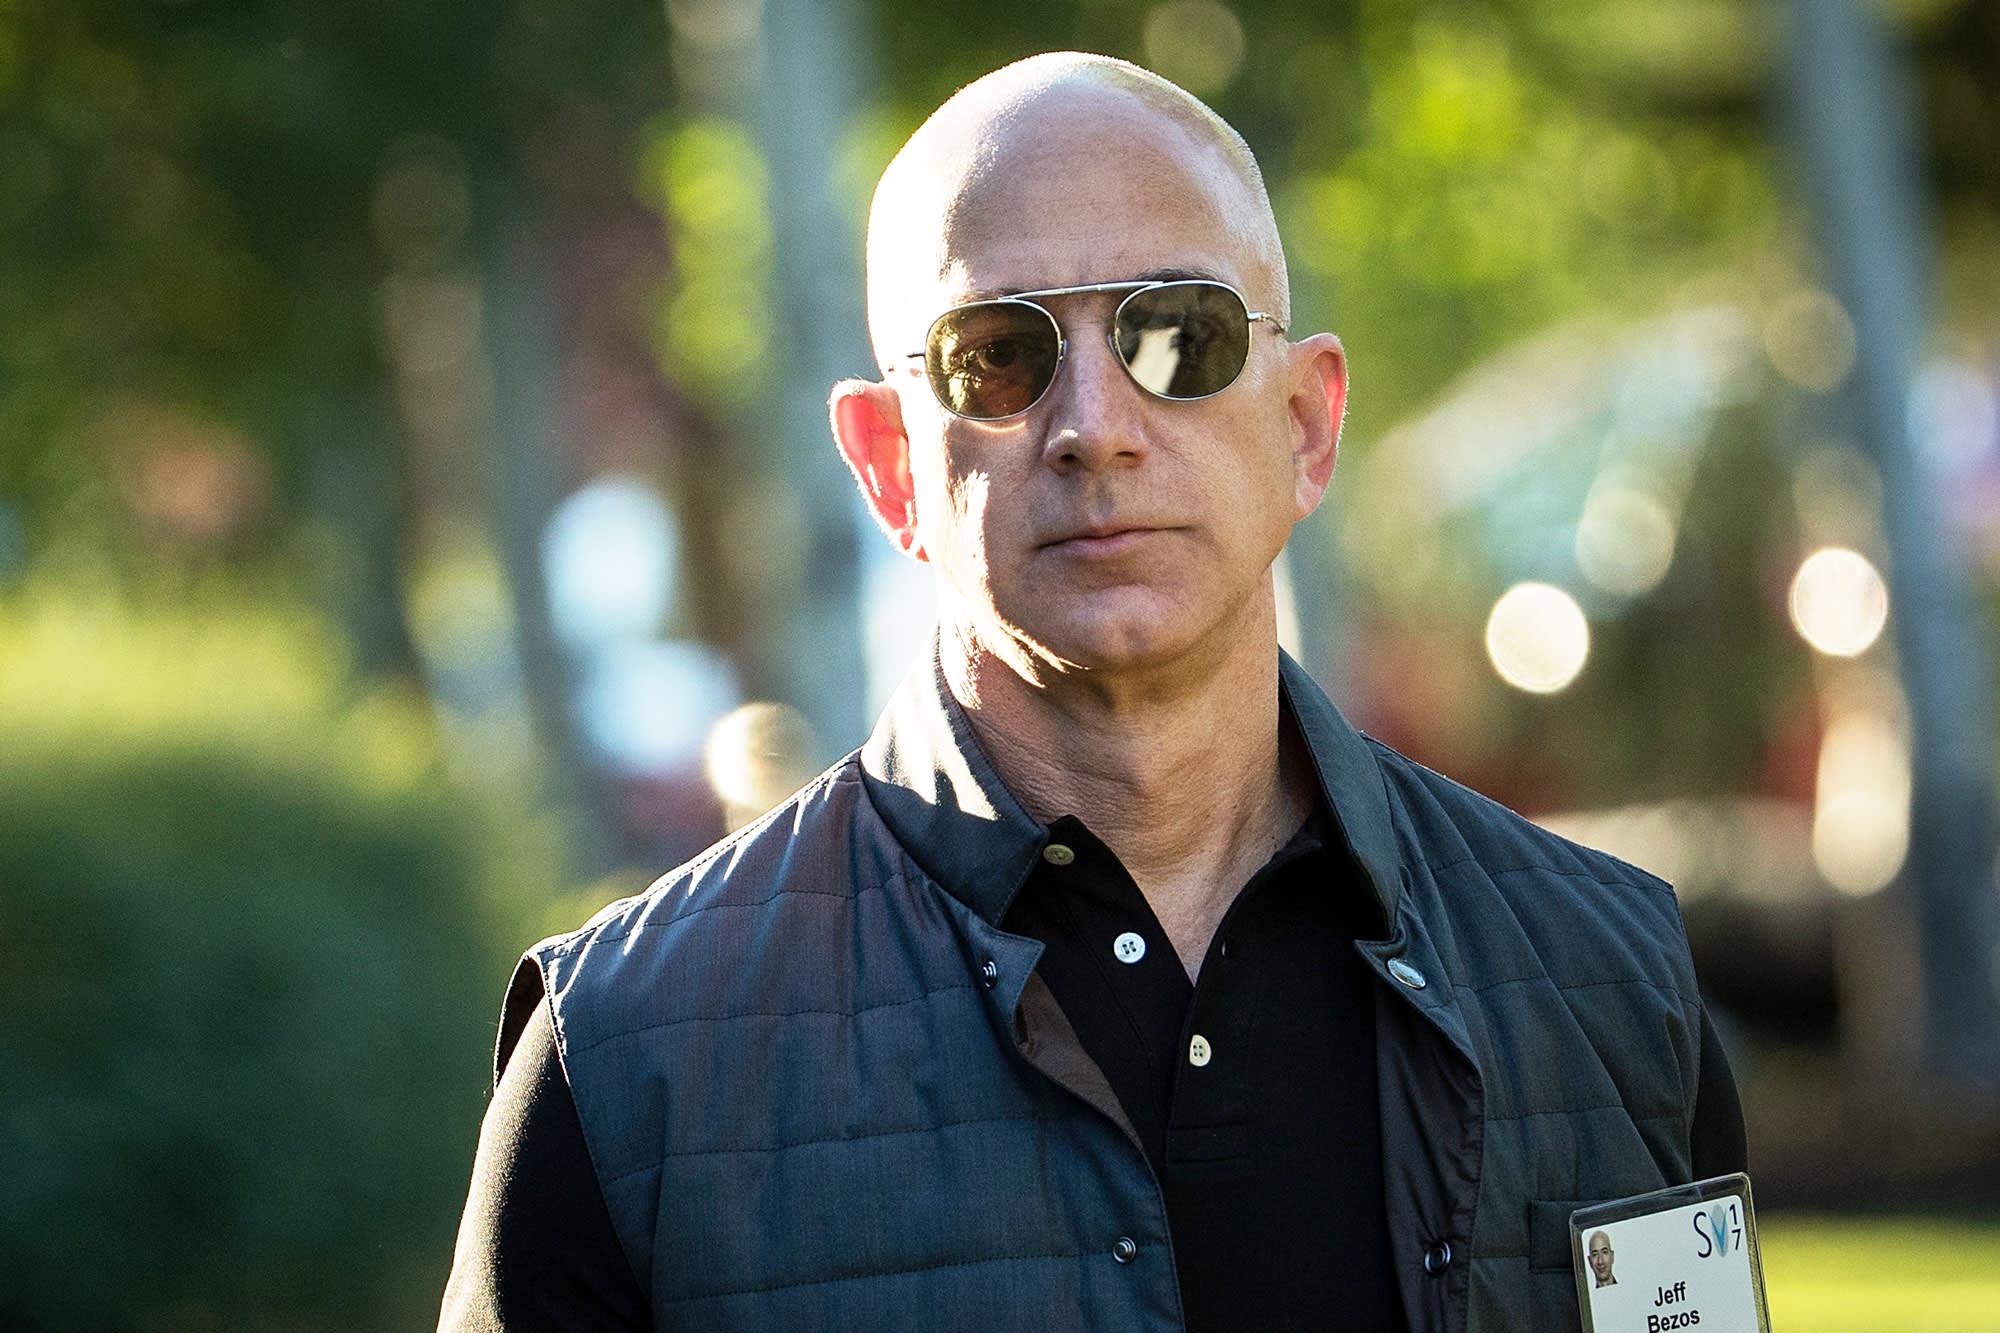 Why Jeff Bezos And Bill Gates Both Do This Mundane Chore